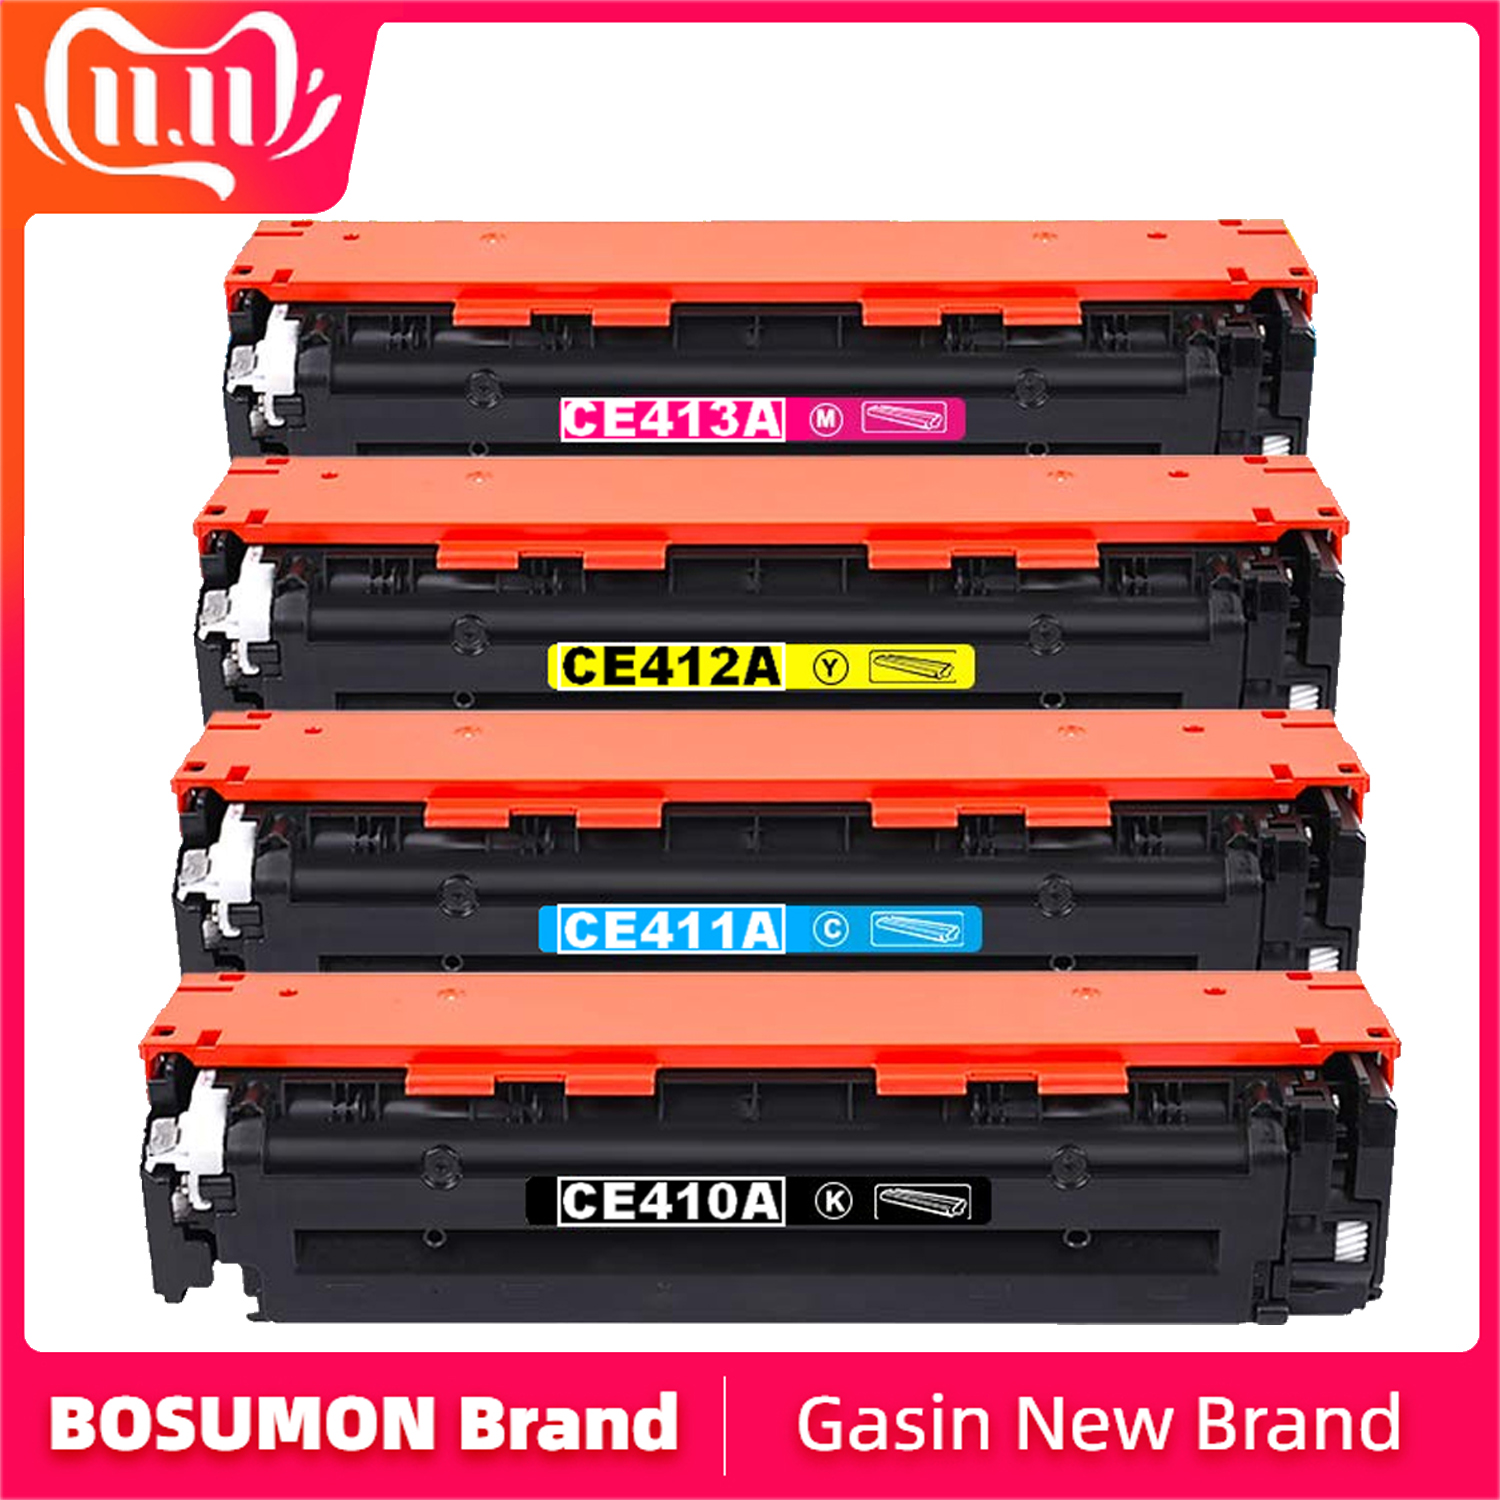 305X <font><b>305A</b></font> CE410X CE410A CE411A CE412A CE413A Toner Cartridge Compatible for <font><b>HP</b></font> Laserjet Enterprise 300 color M351 image